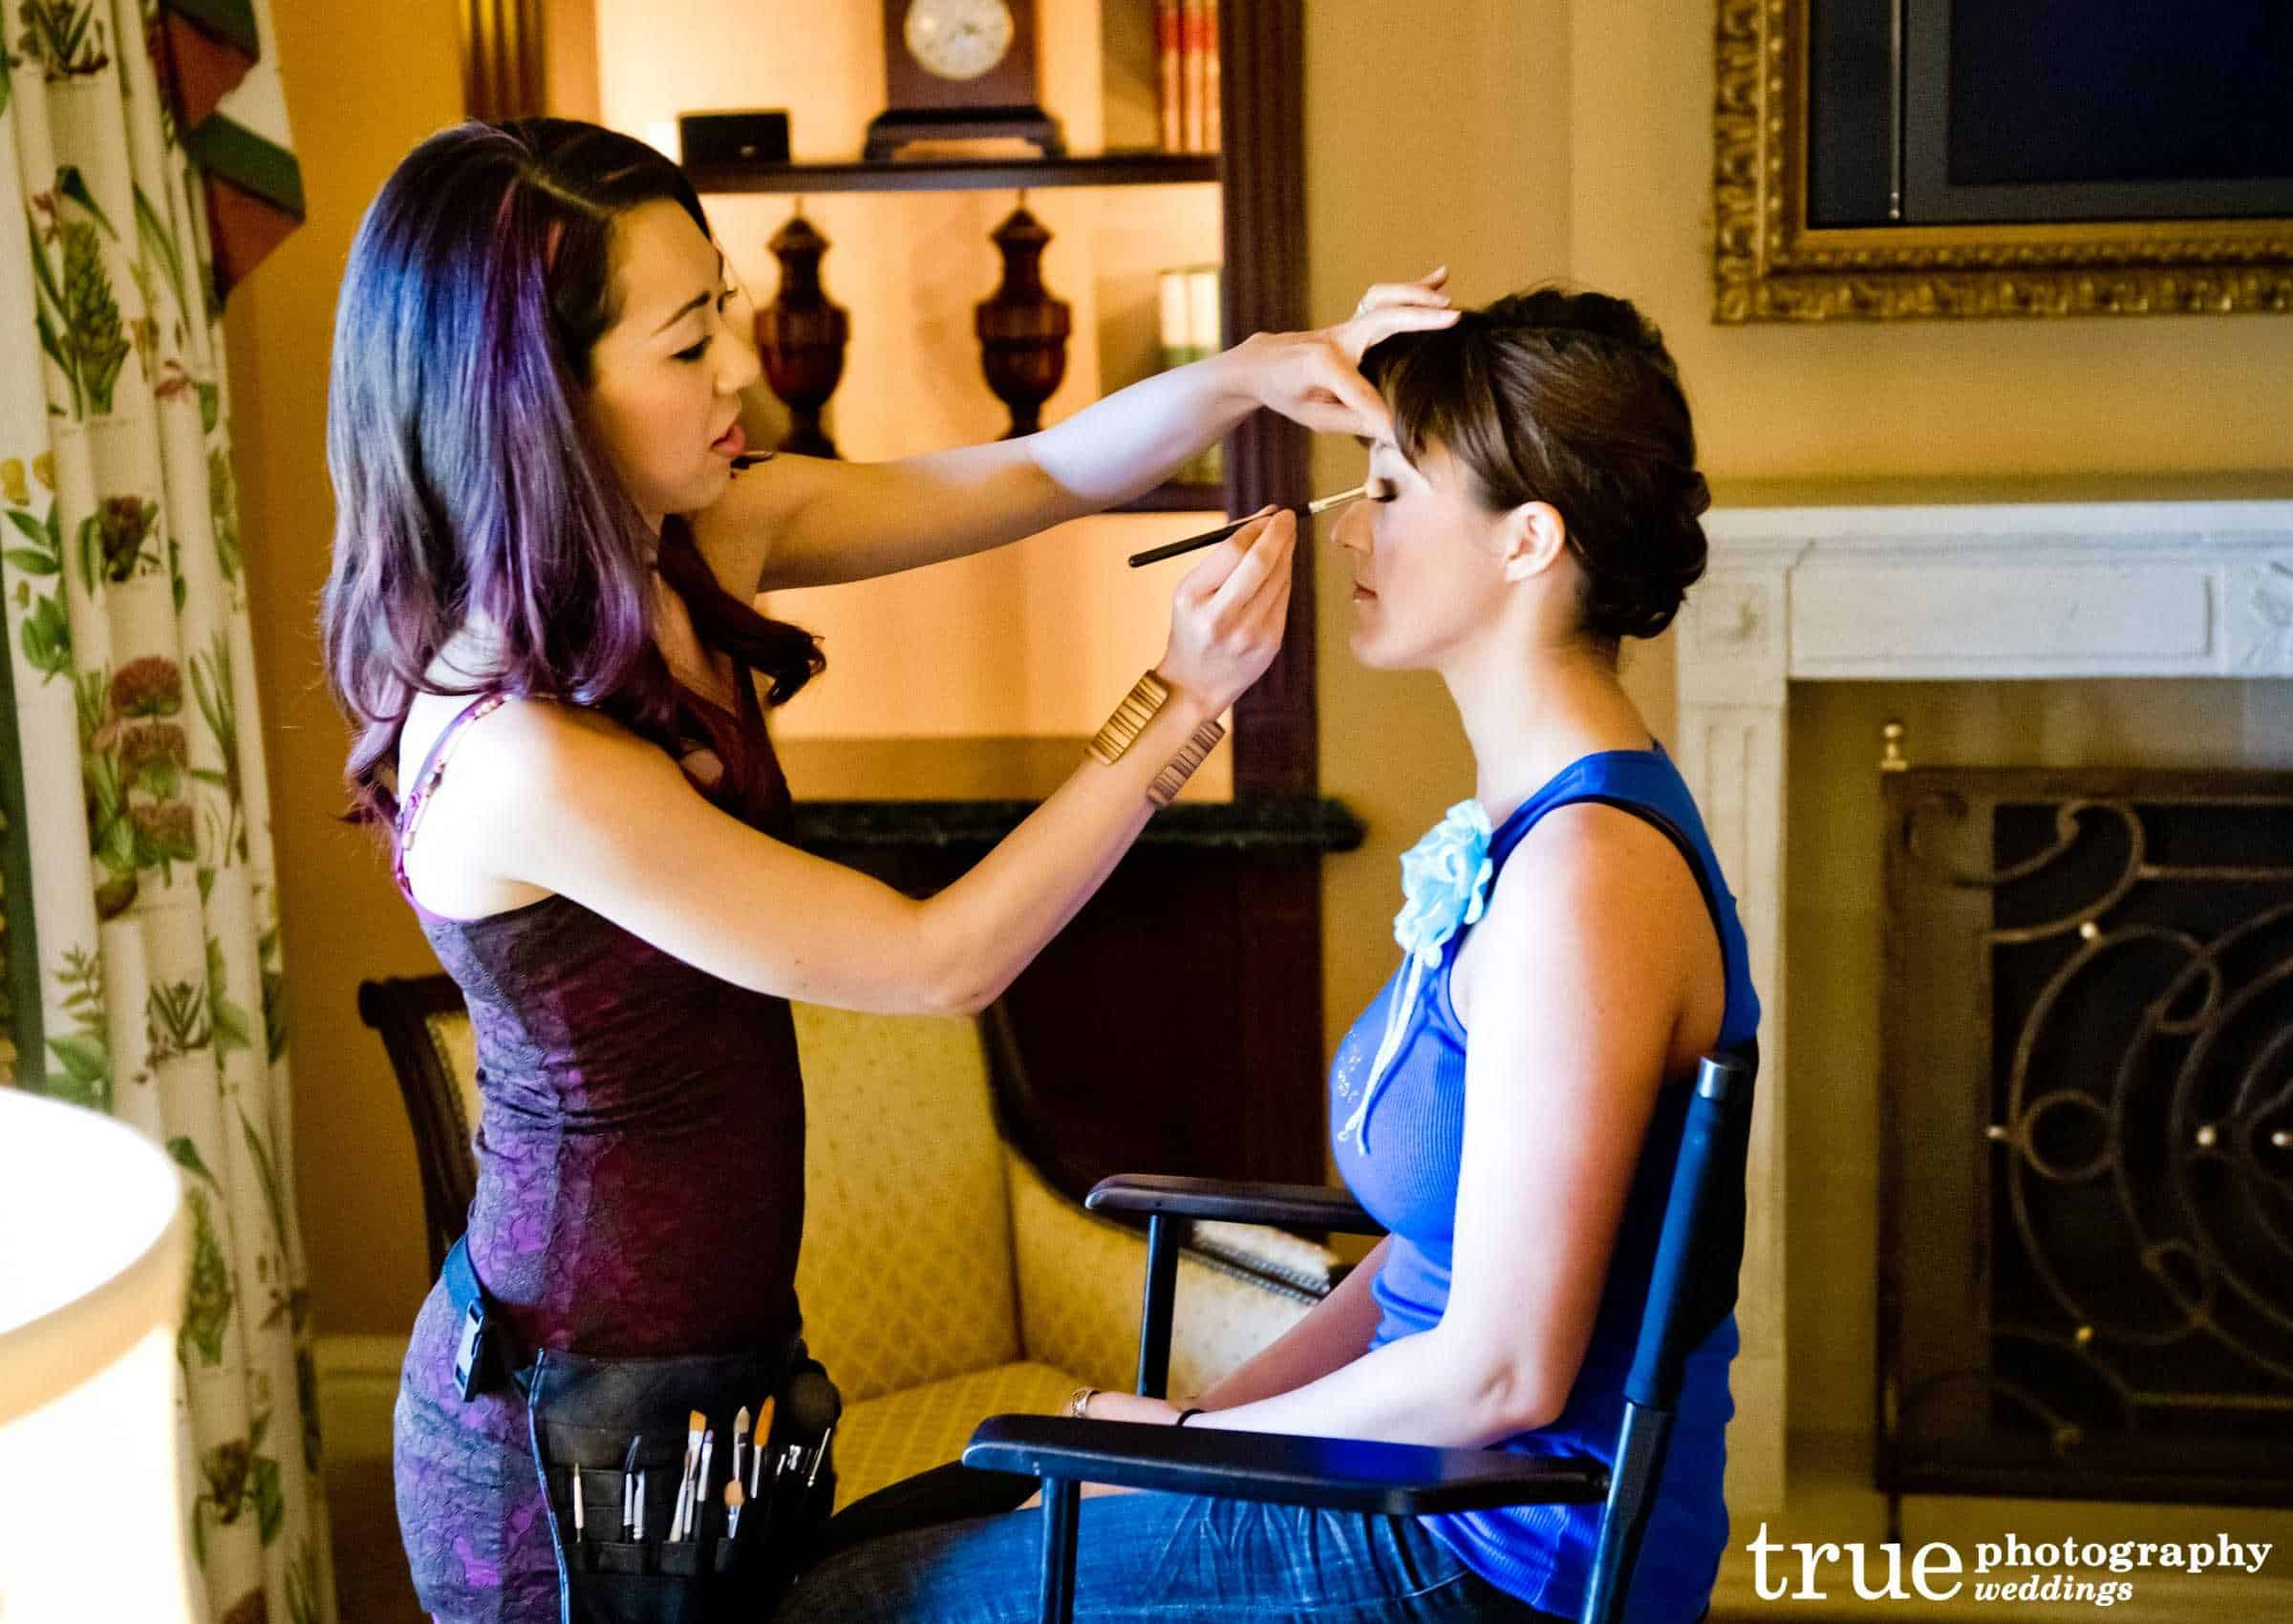 Bridal Makeup Course in San Diego